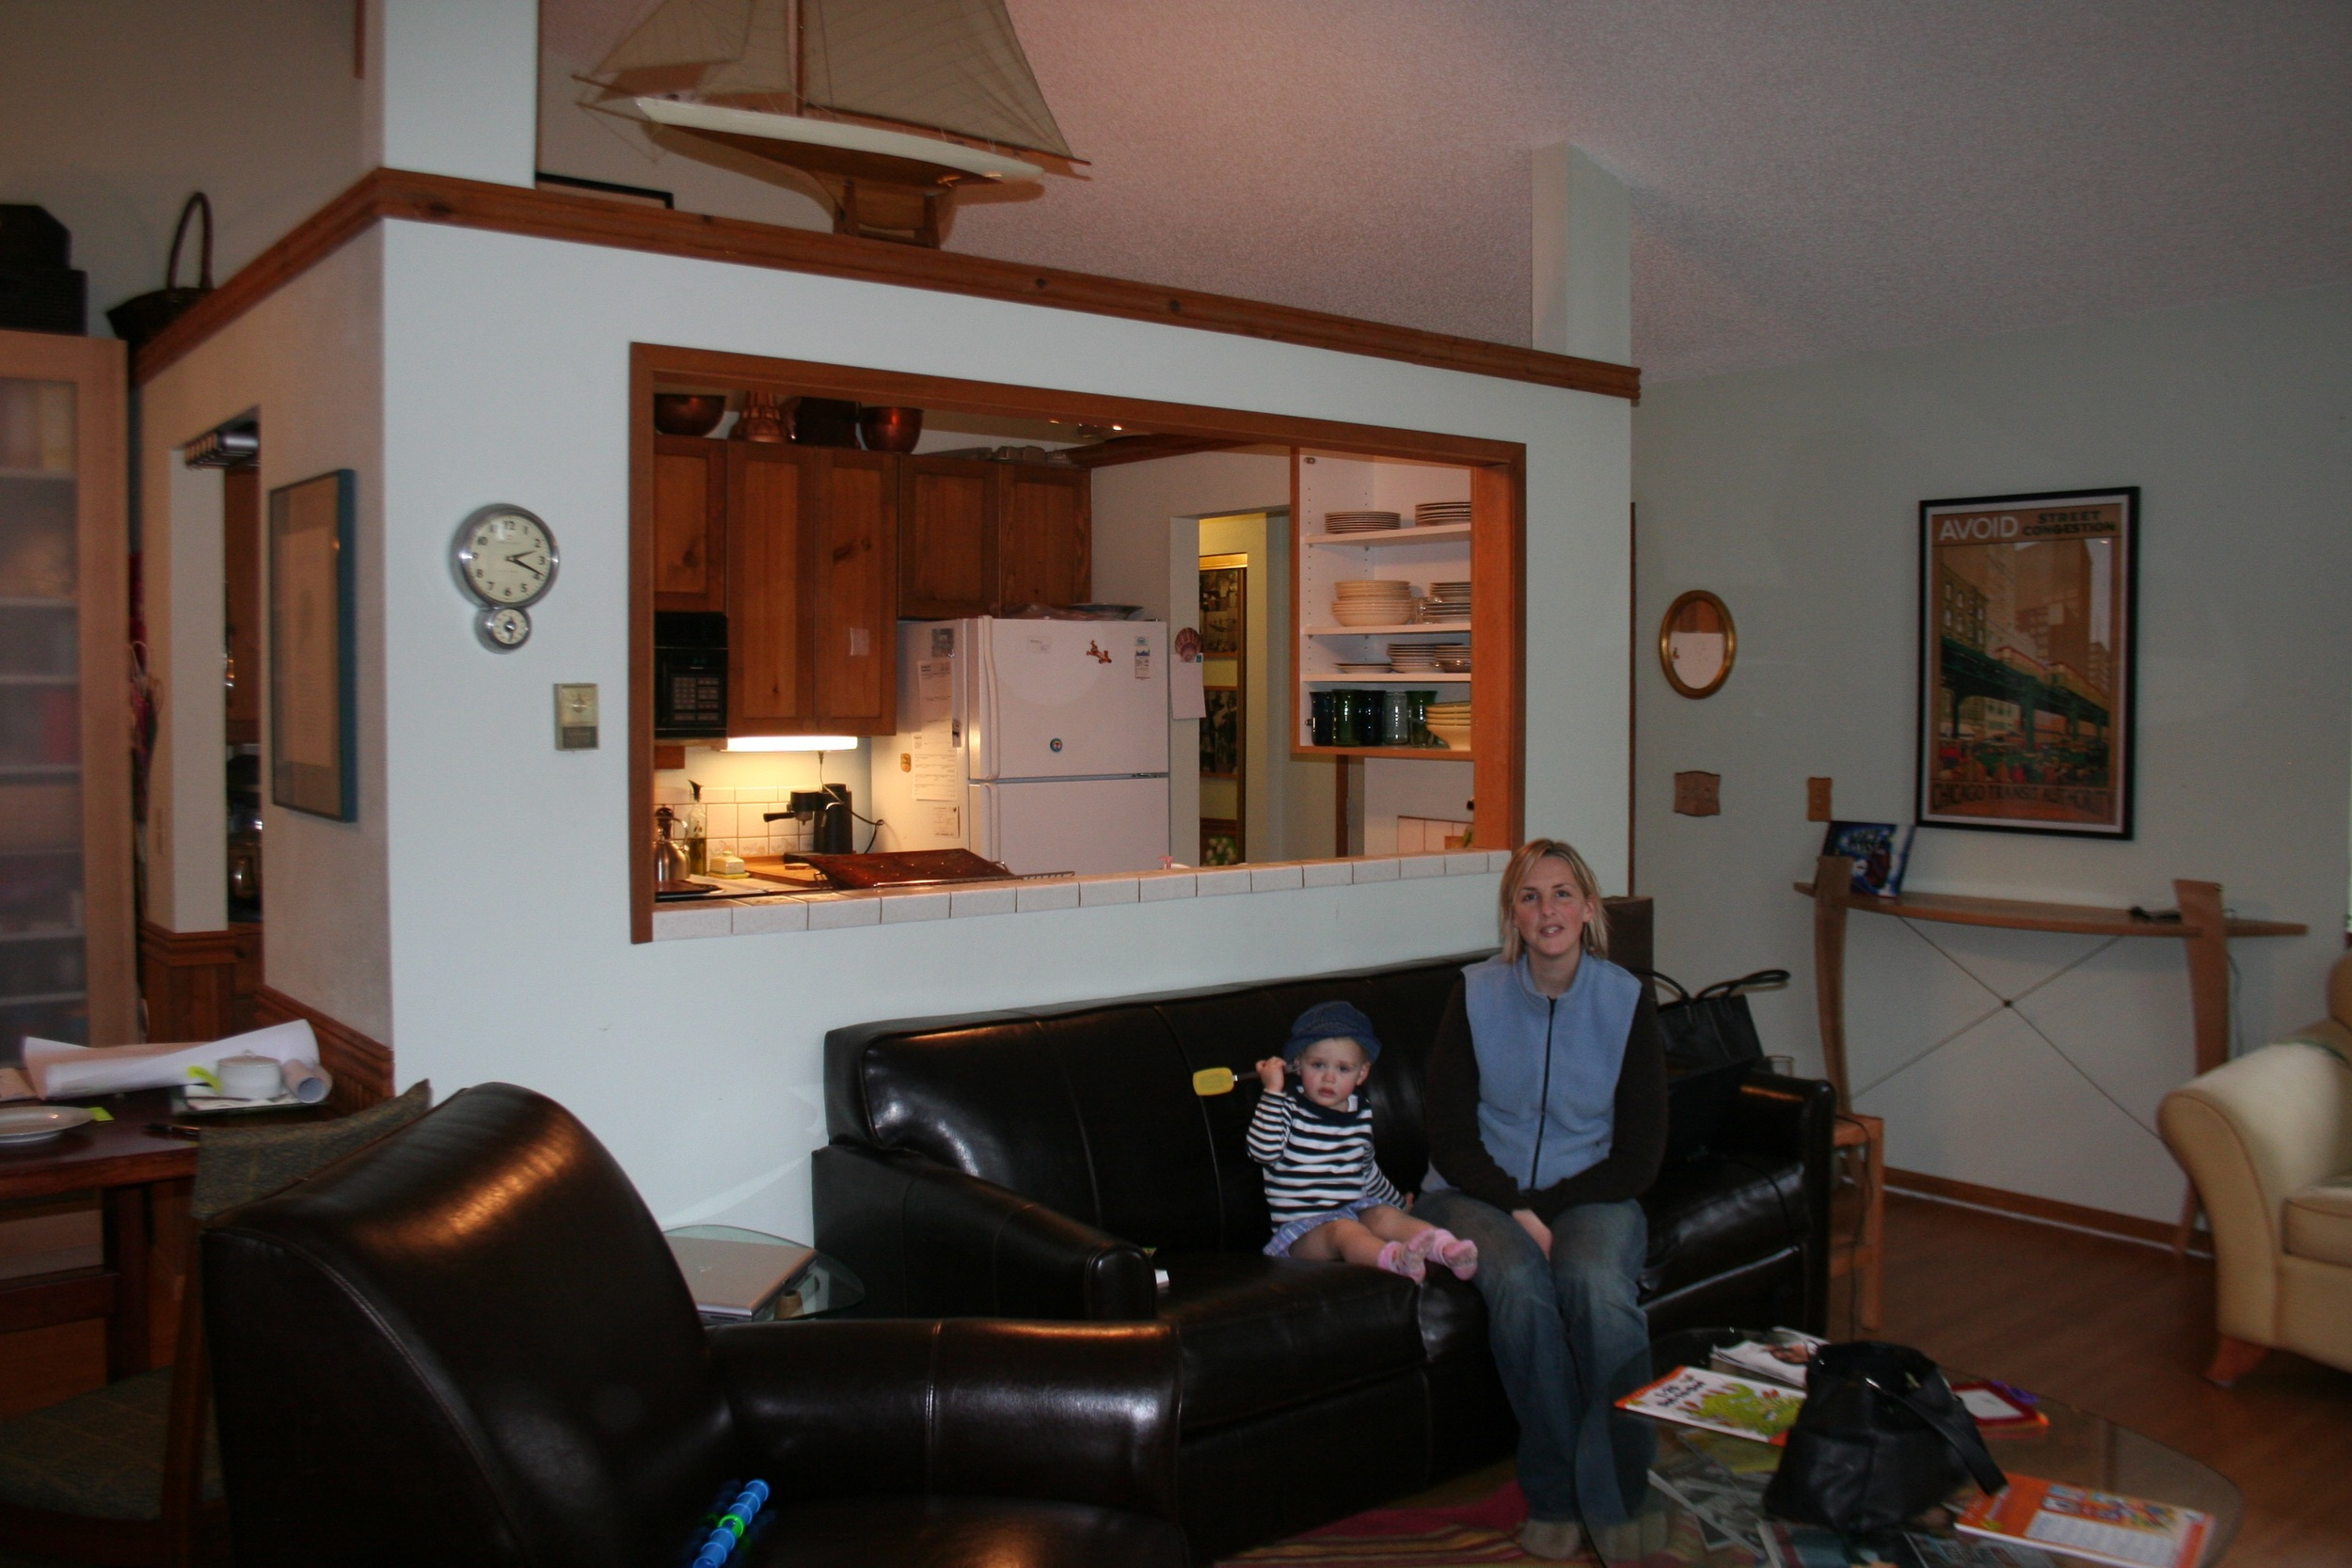 The kitchen before was inside the living room and a tiny cramped space walled off from the rest of the room.